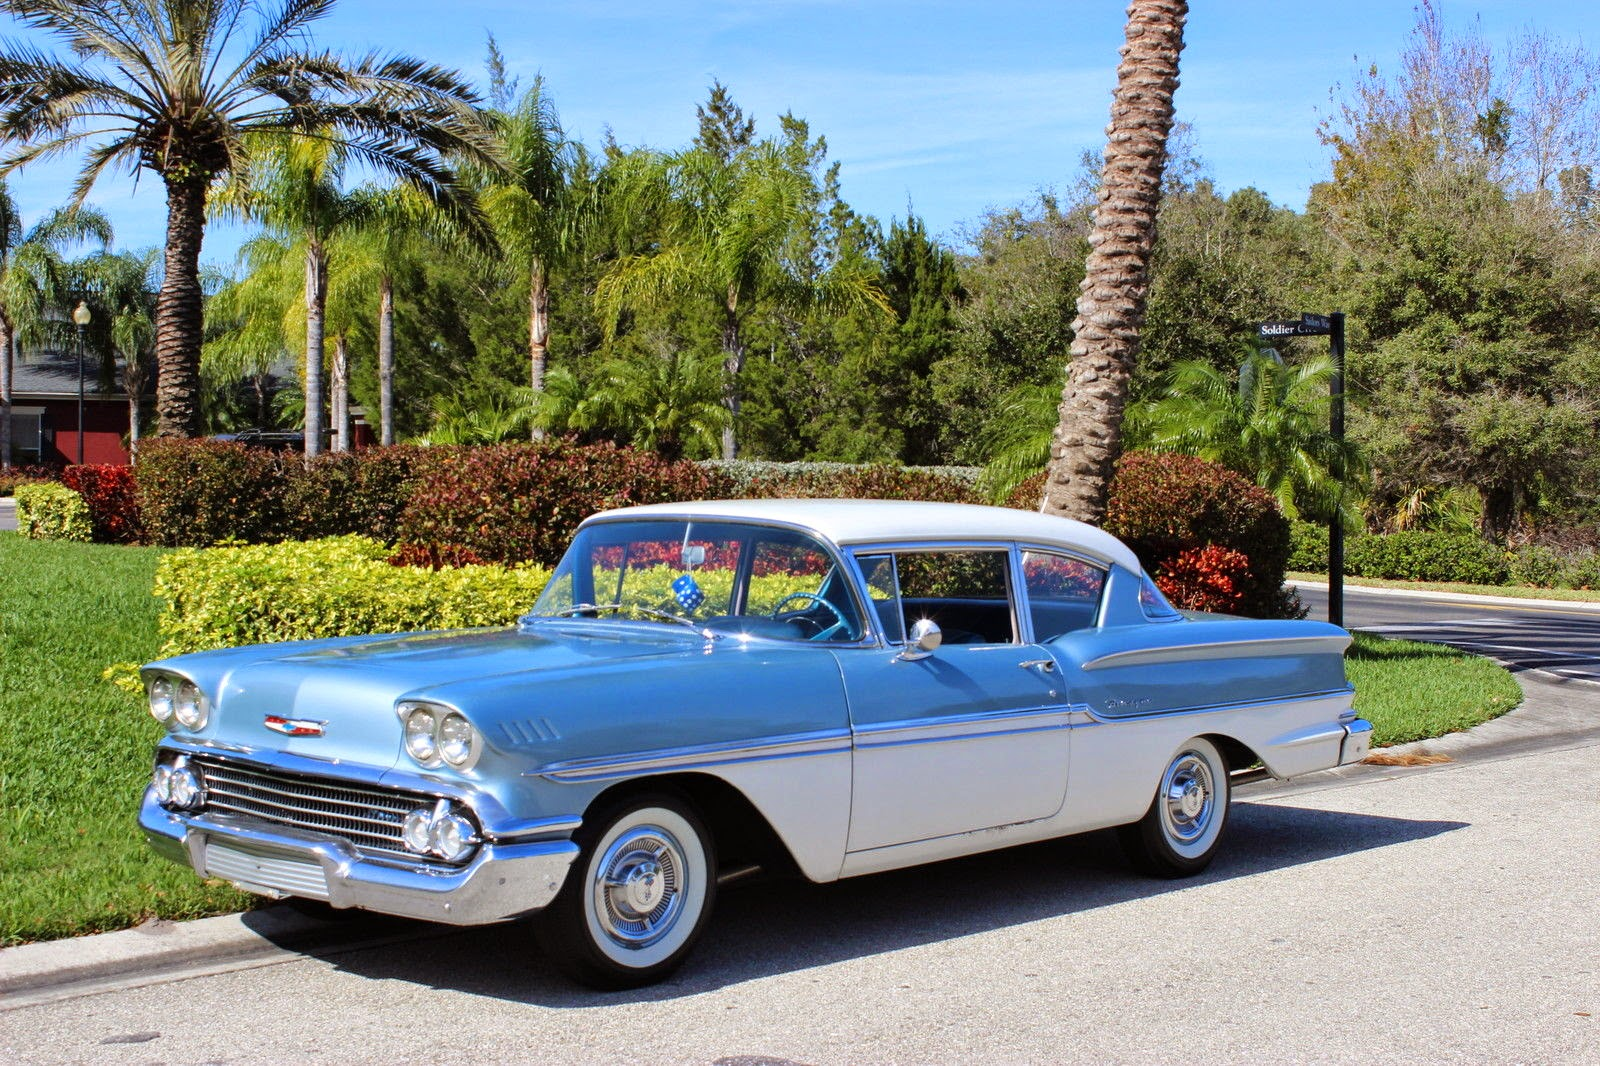 All American Classic Cars: 1958 Chevrolet Biscayne 2-Door Sedan